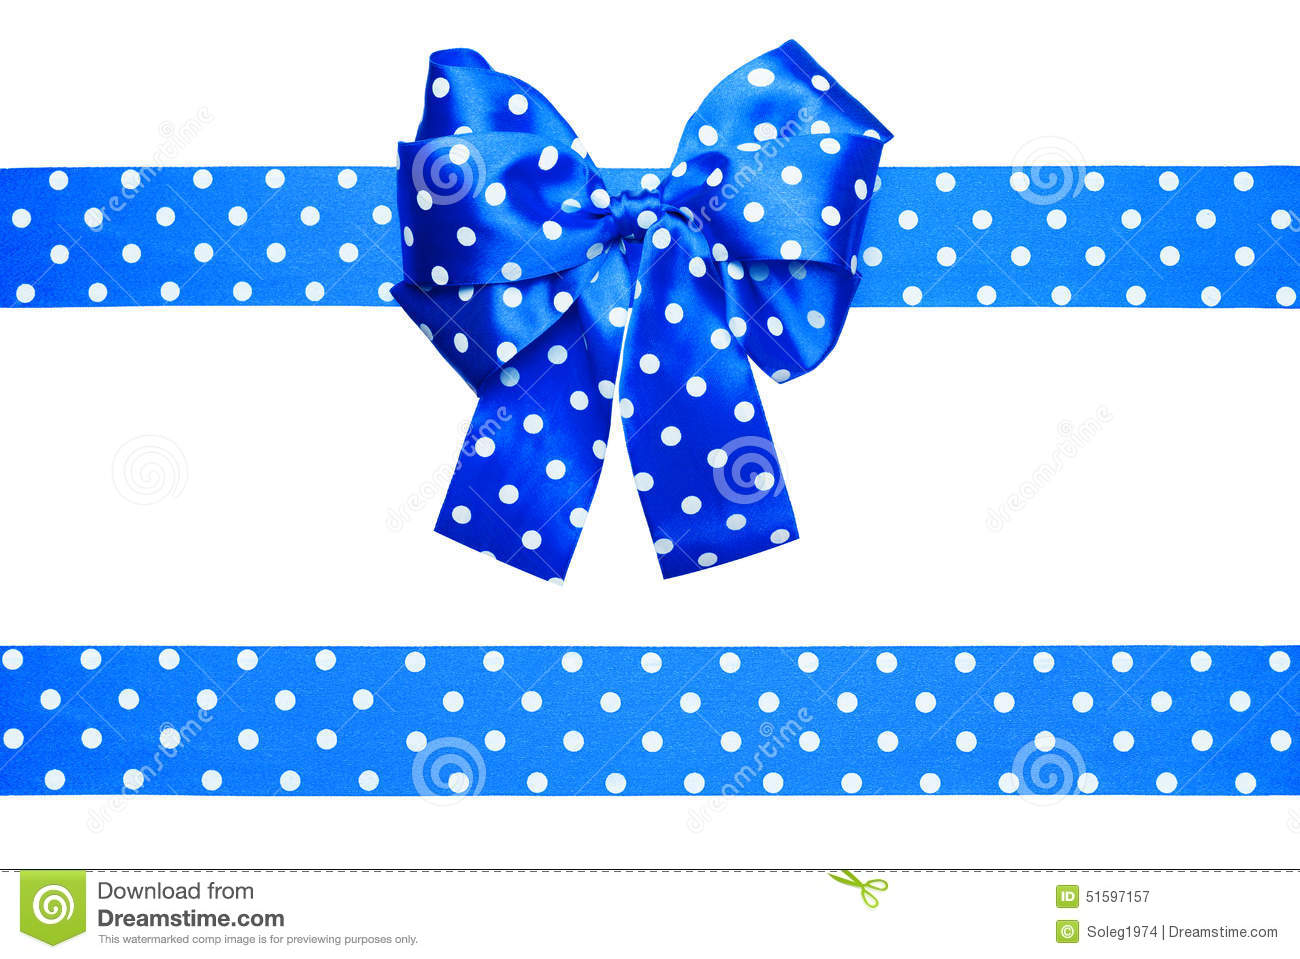 Black And White Dot Wallpaper Blue Bow And Ribbon With White Polka Dots Made From Silk